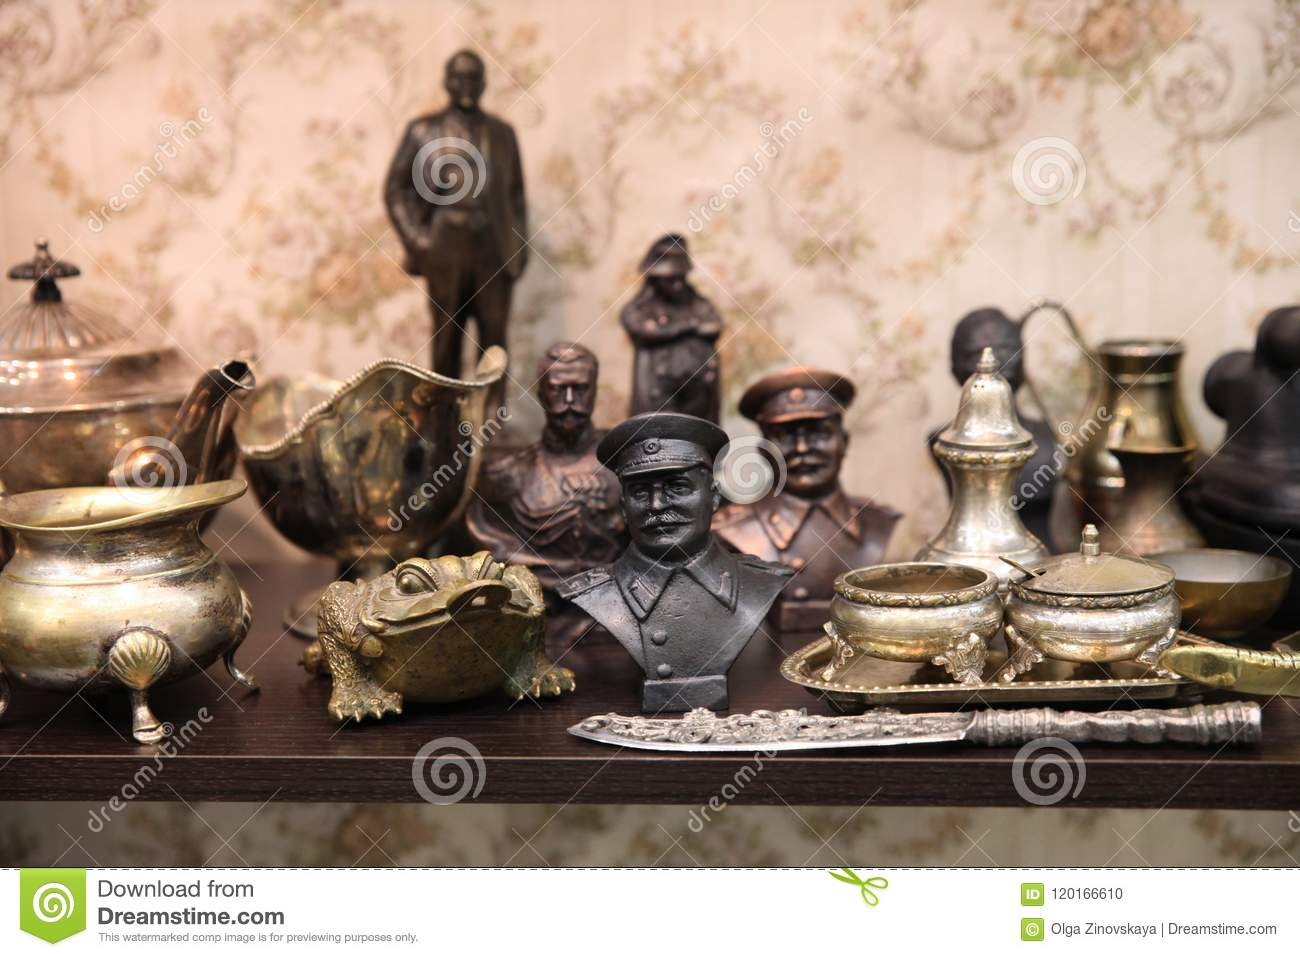 Vintage Bust Of Stalin At A Flea Market Stock Photo - Image